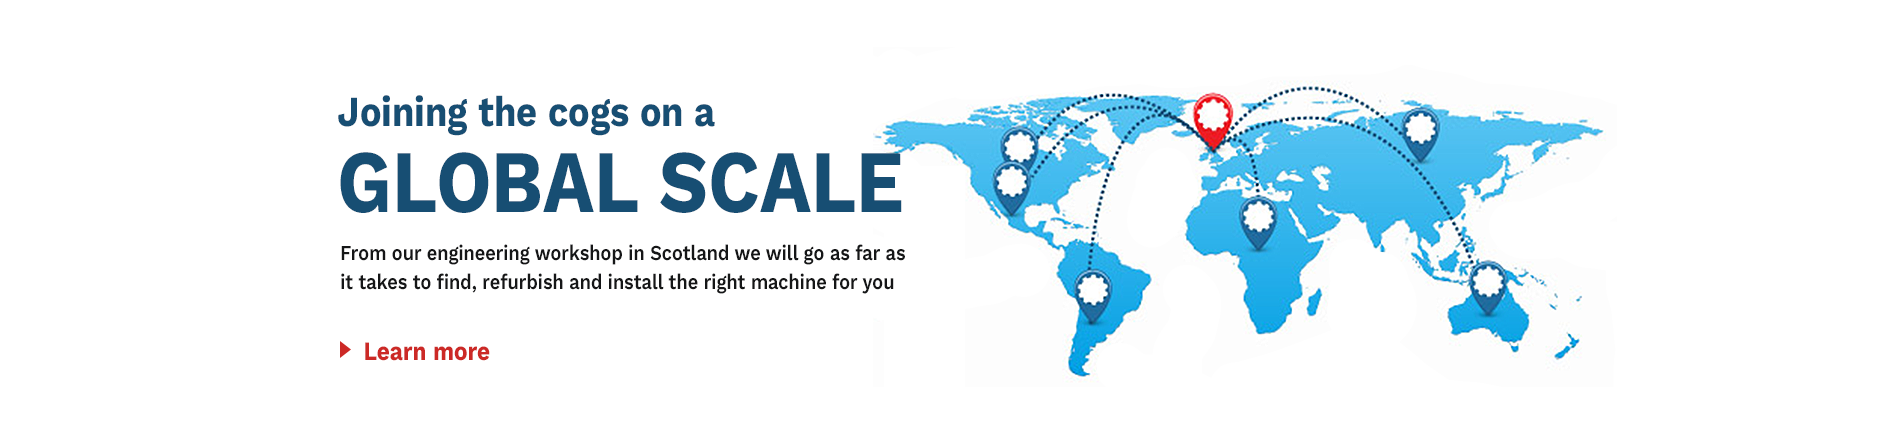 Joining the Cogs on a Global Scale